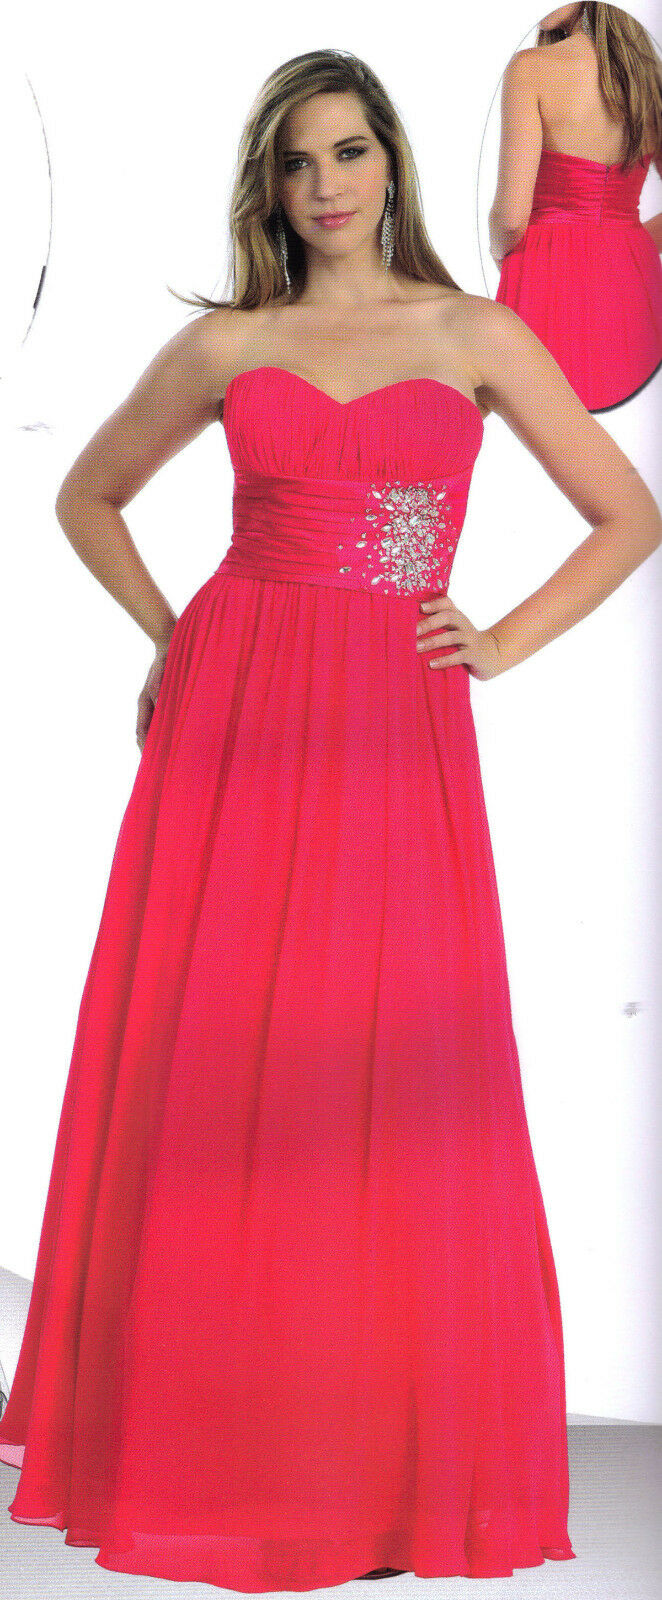 Coral PAGEANT DANCE PARTY LONG PROM FORMAL OCCASION DRESS BALL GOWN  SZ  12